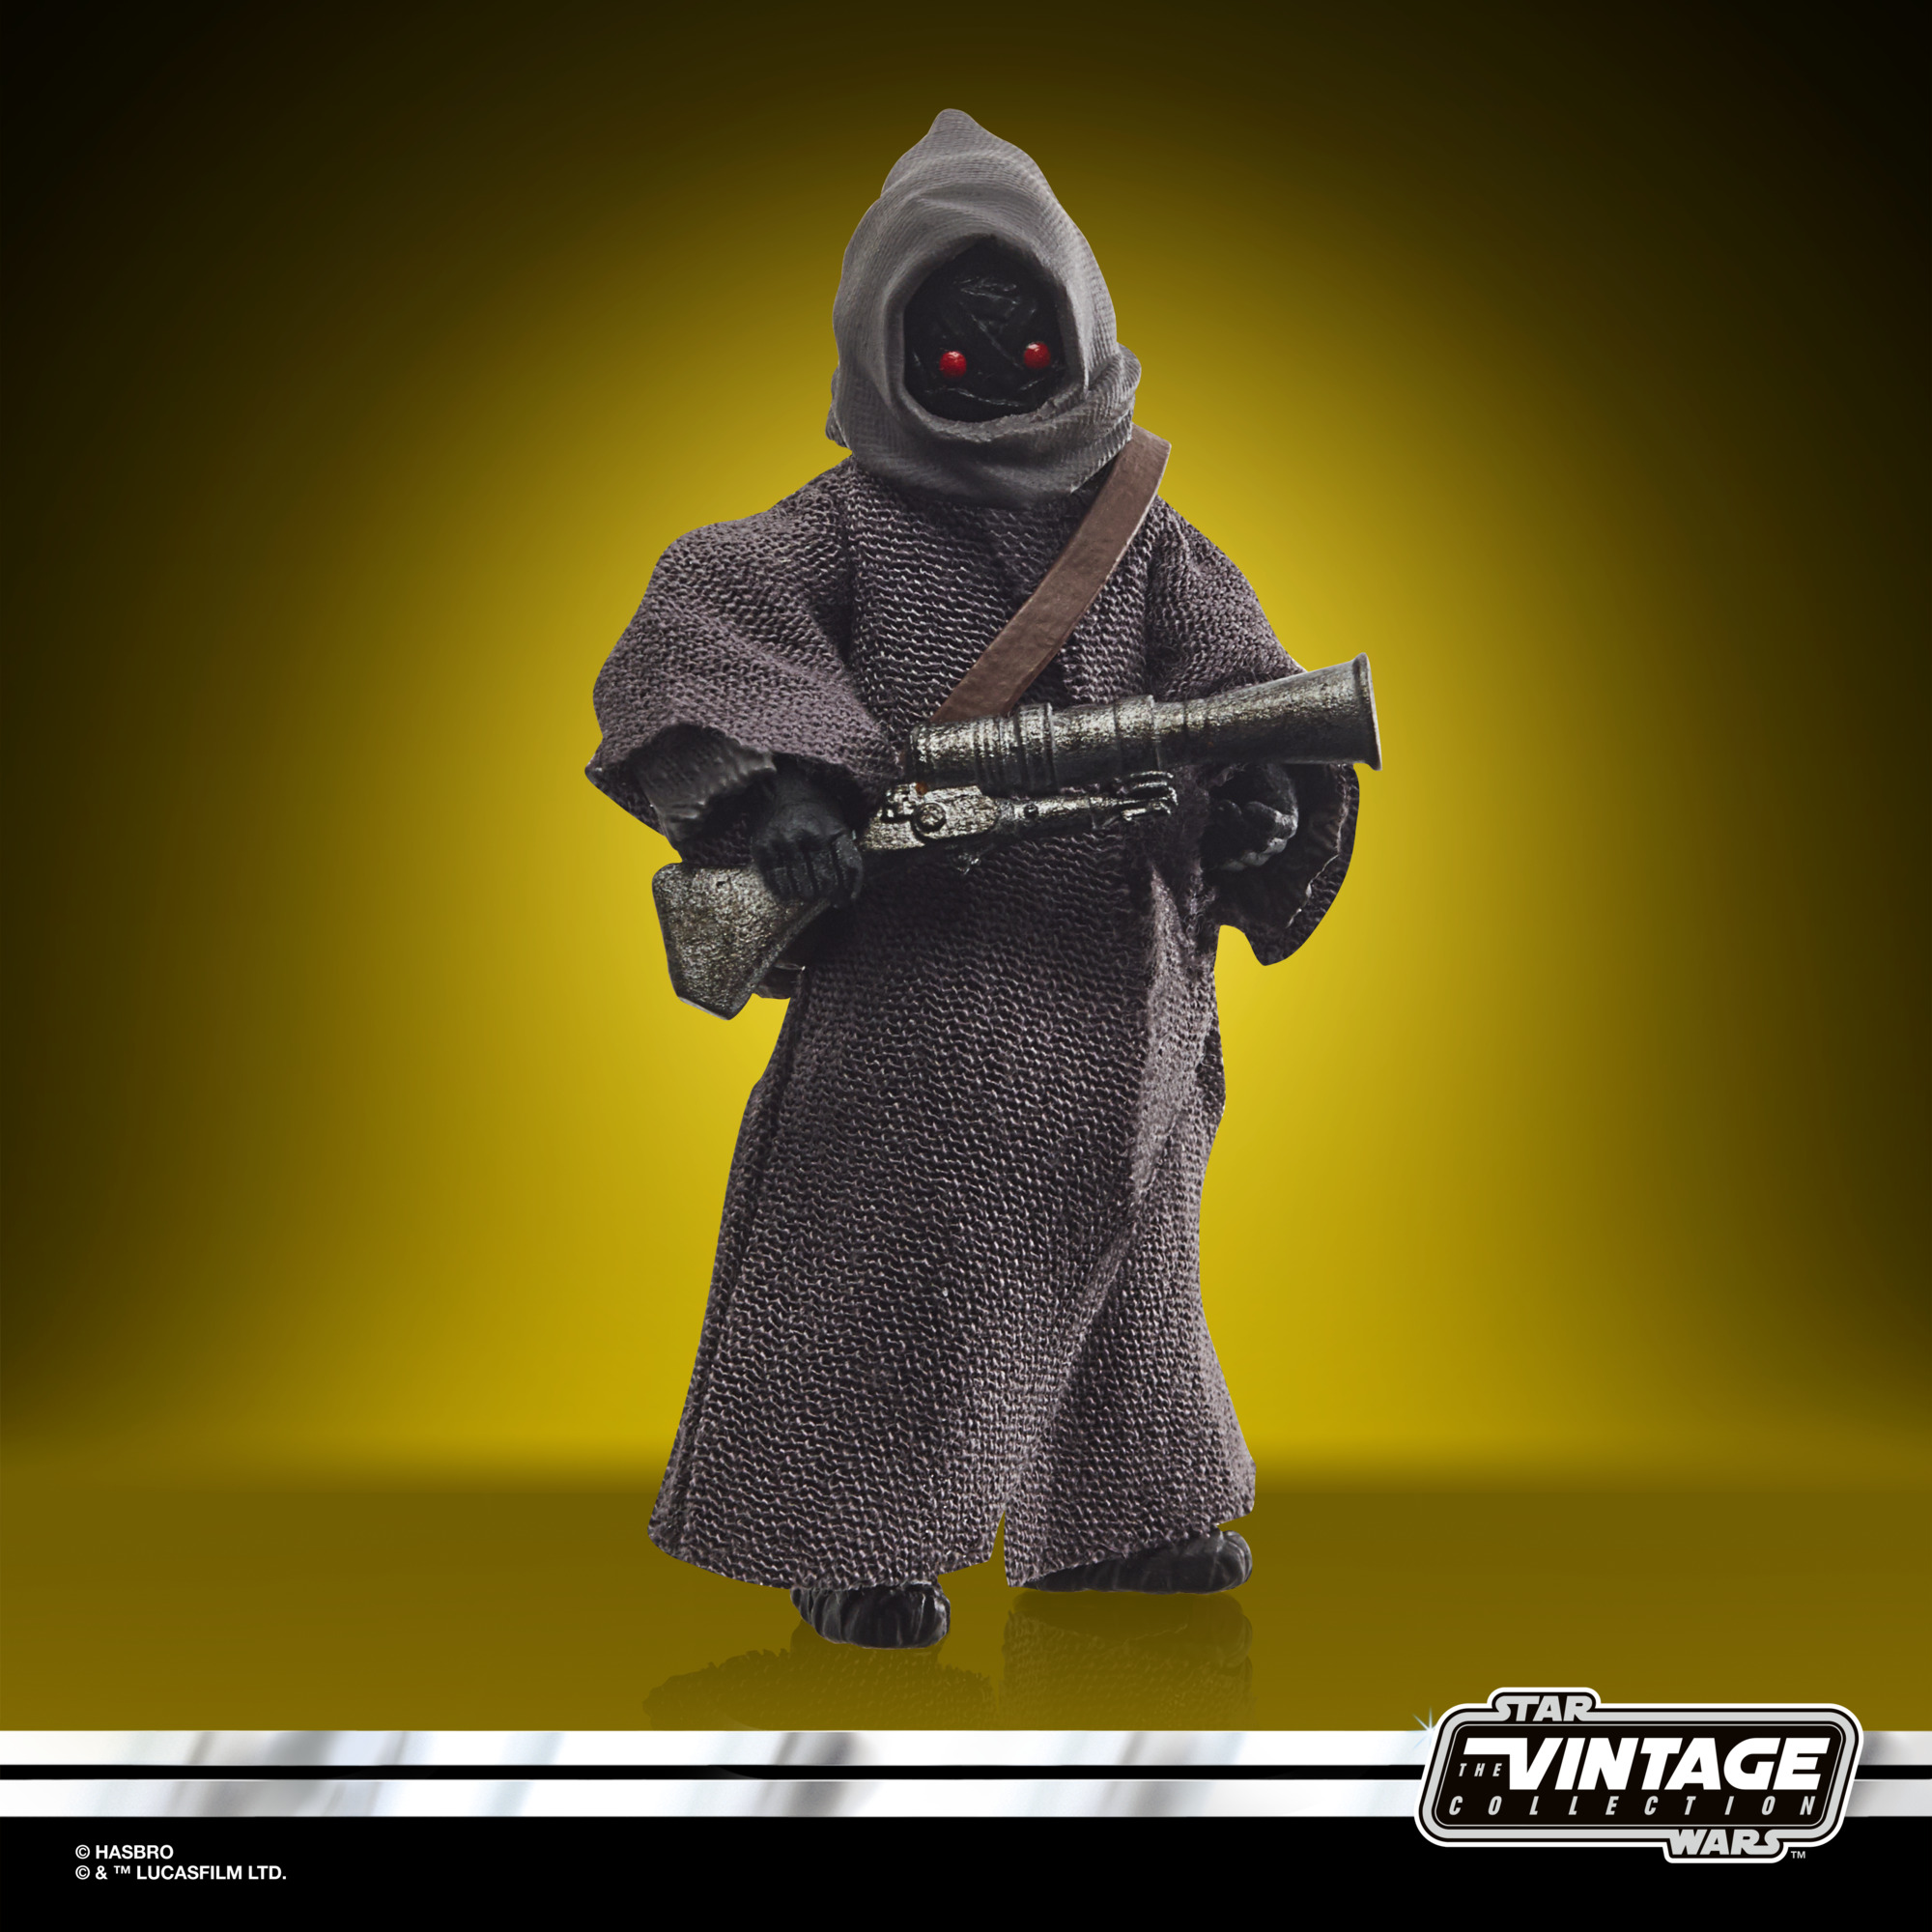 Star Wars The Vintage Collection Offworld Jawa (Arvala-7) F18945L00 5010993834389